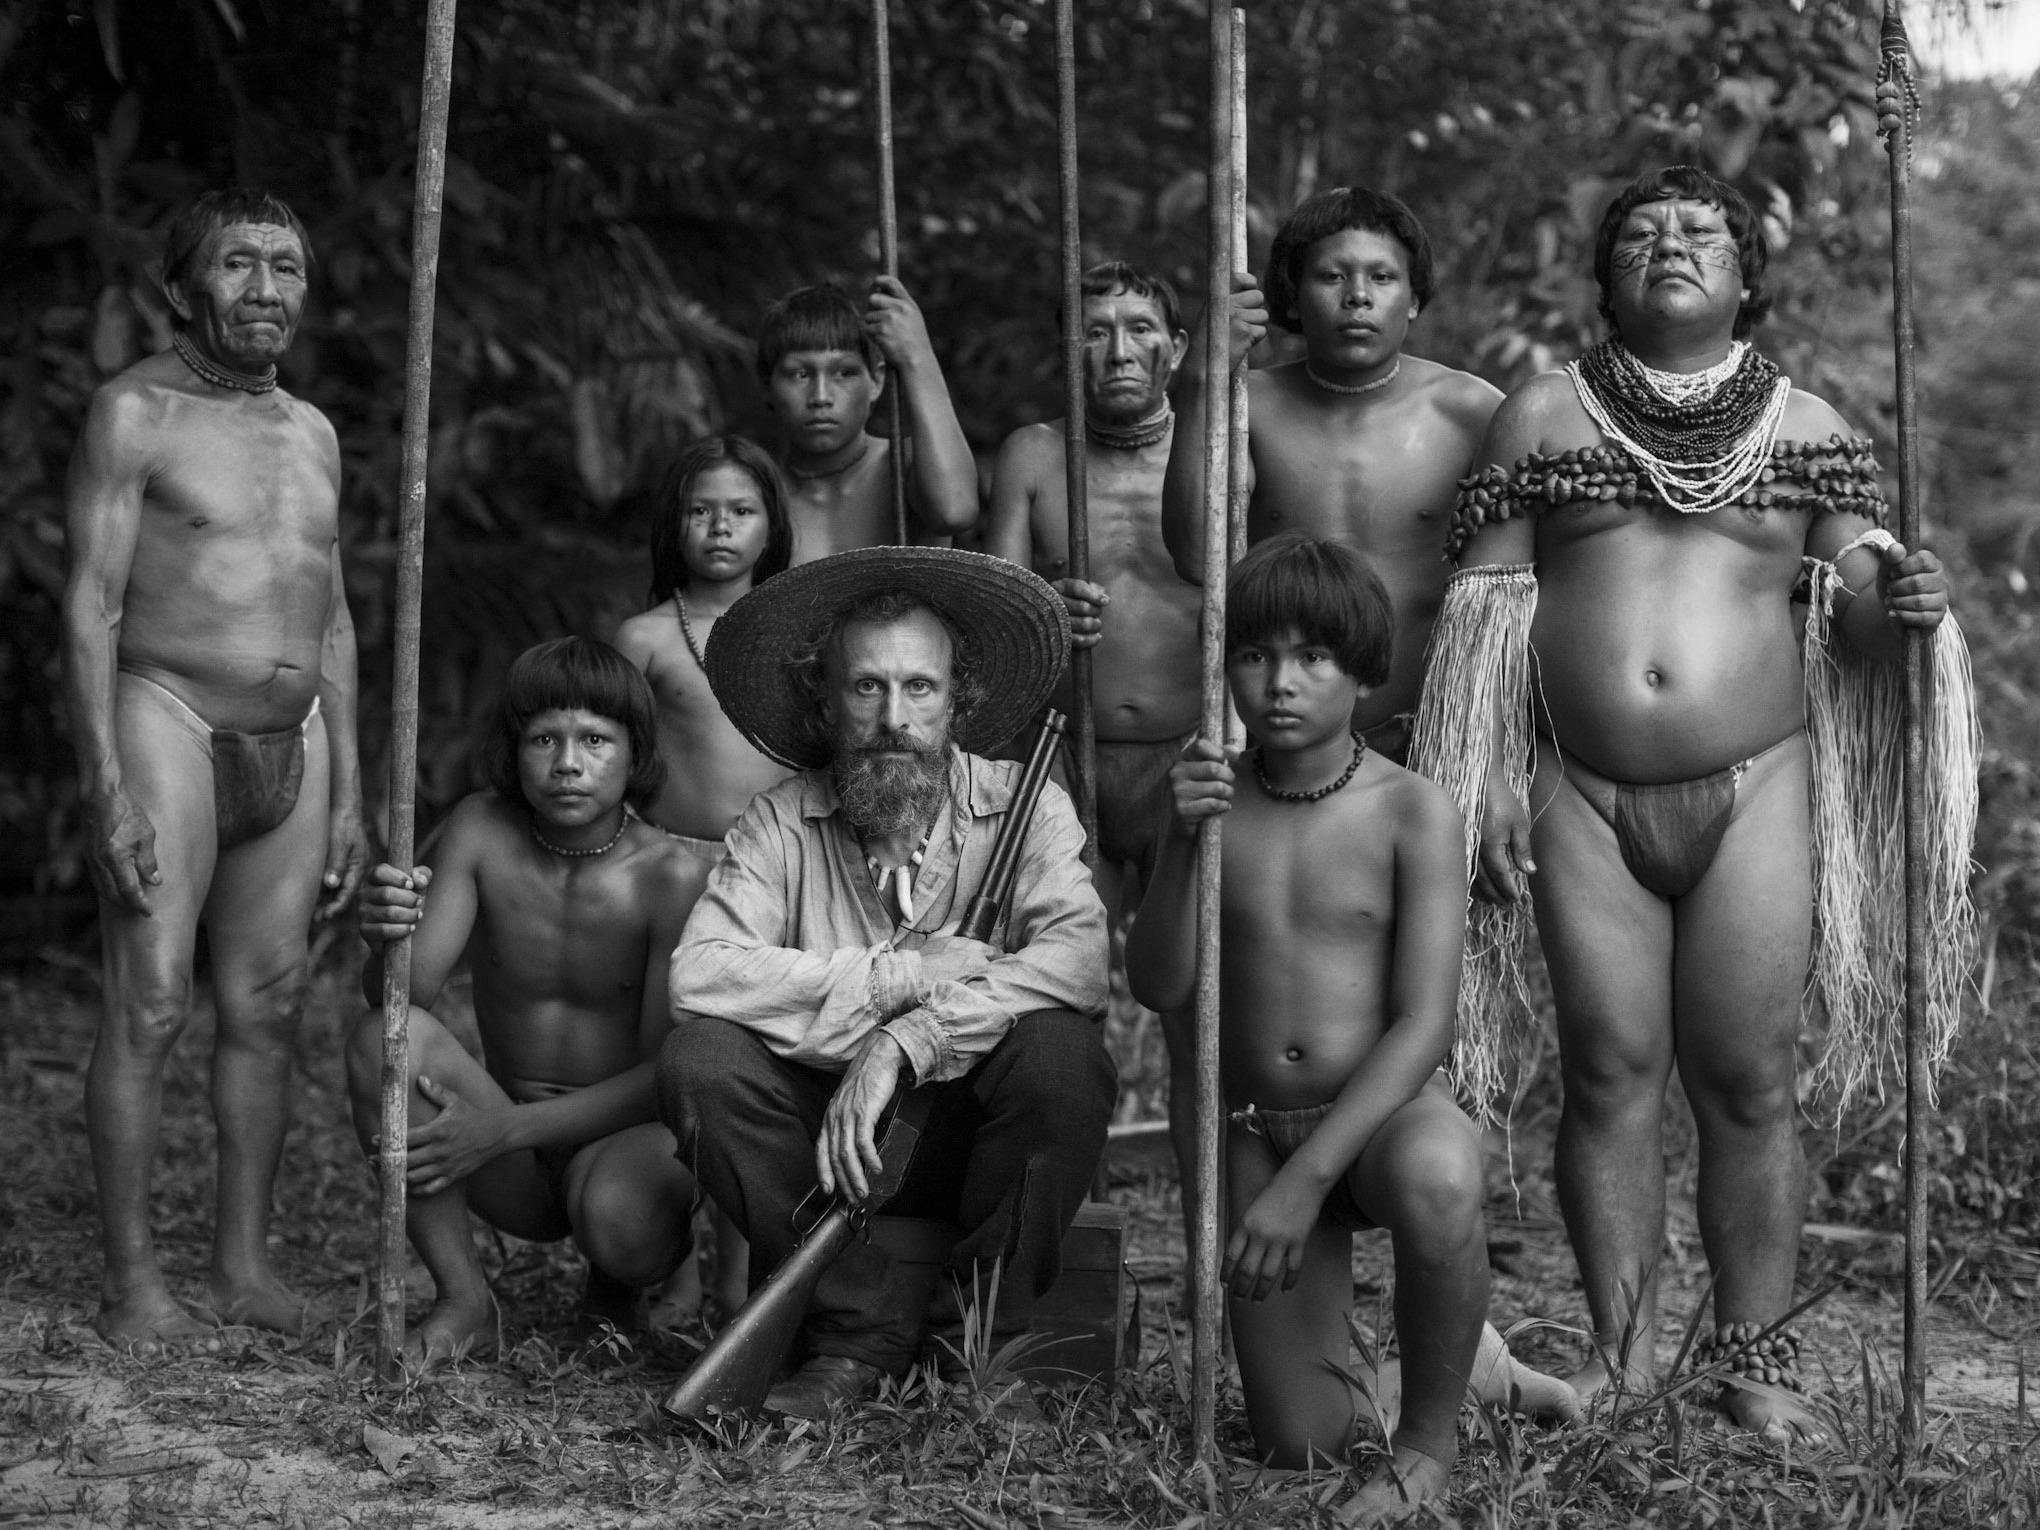 Embrace of the Serpent (2015) - A Piercingly Potent Psychedelic Elixir of Justice, Humanity, and the Very Origin and Destiny of the Universe